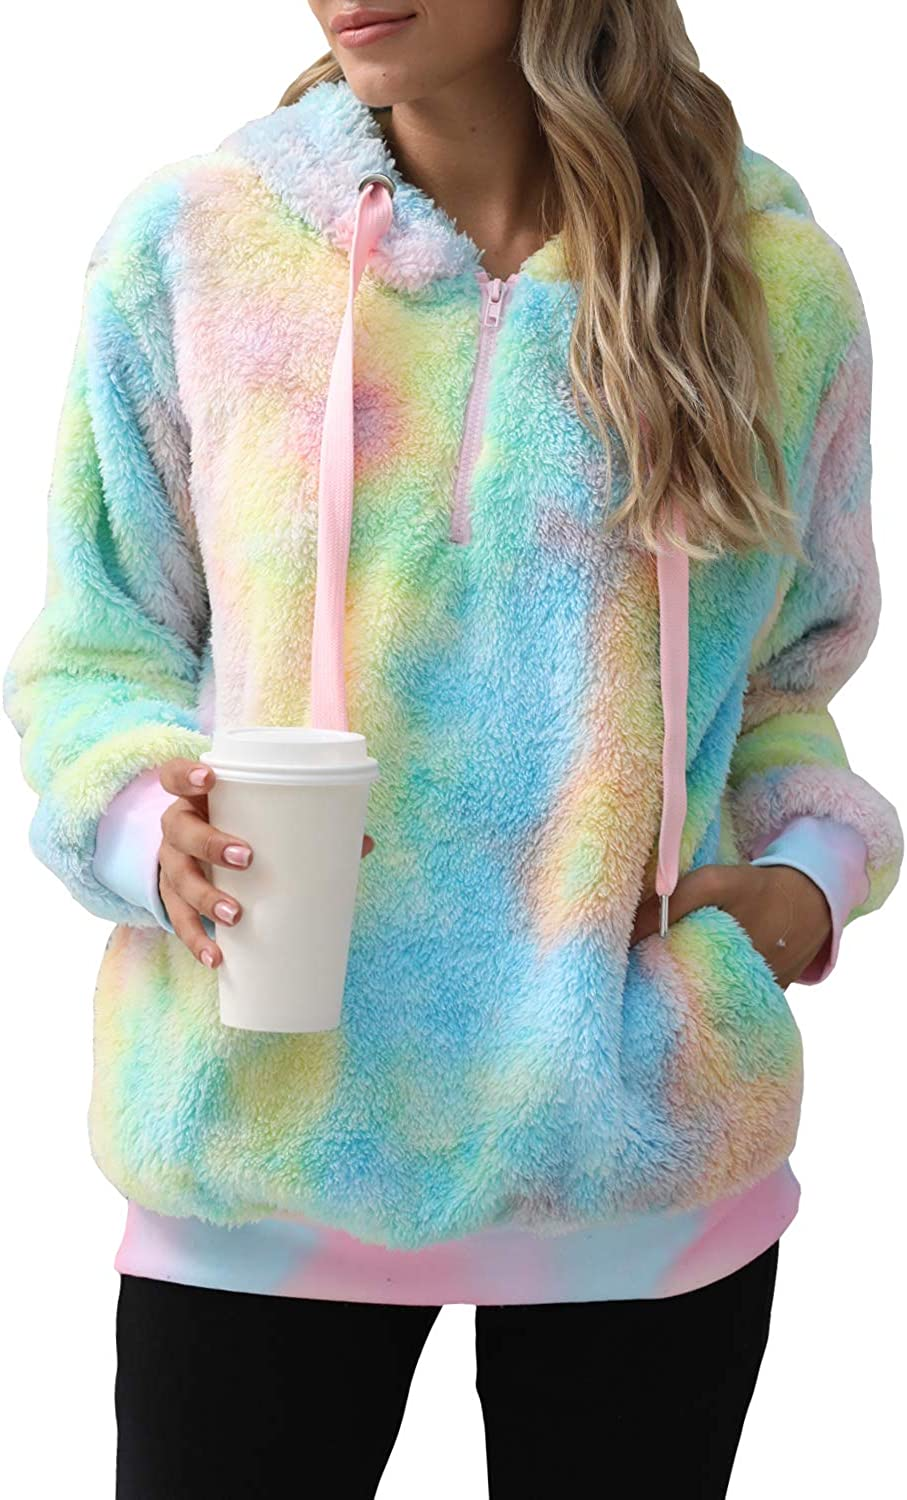 ReachMe Women's New products world's Max 66% OFF highest quality popular Tie Dye Sherpa with Fuzzy Oversiz Hoodie Pockets